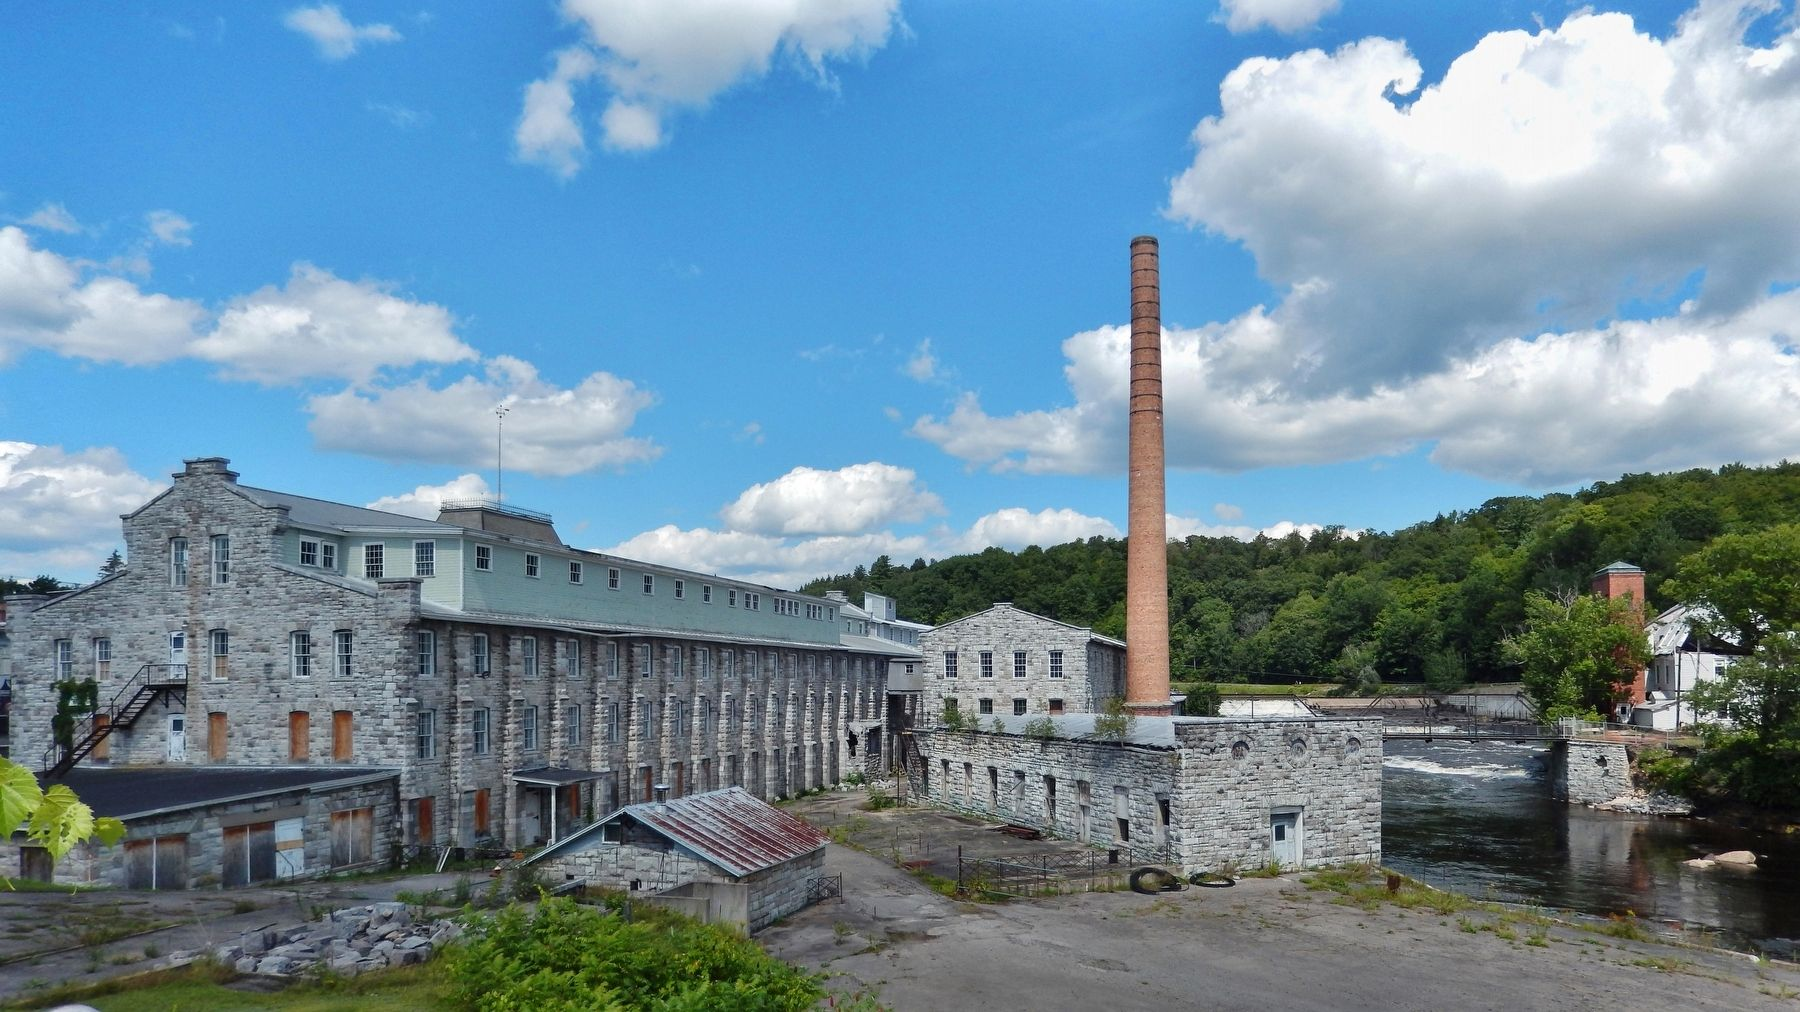 Dolge Company Factory Complex (<i>wide view from southwest • East Canada Creek on right</i>) image. Click for full size.